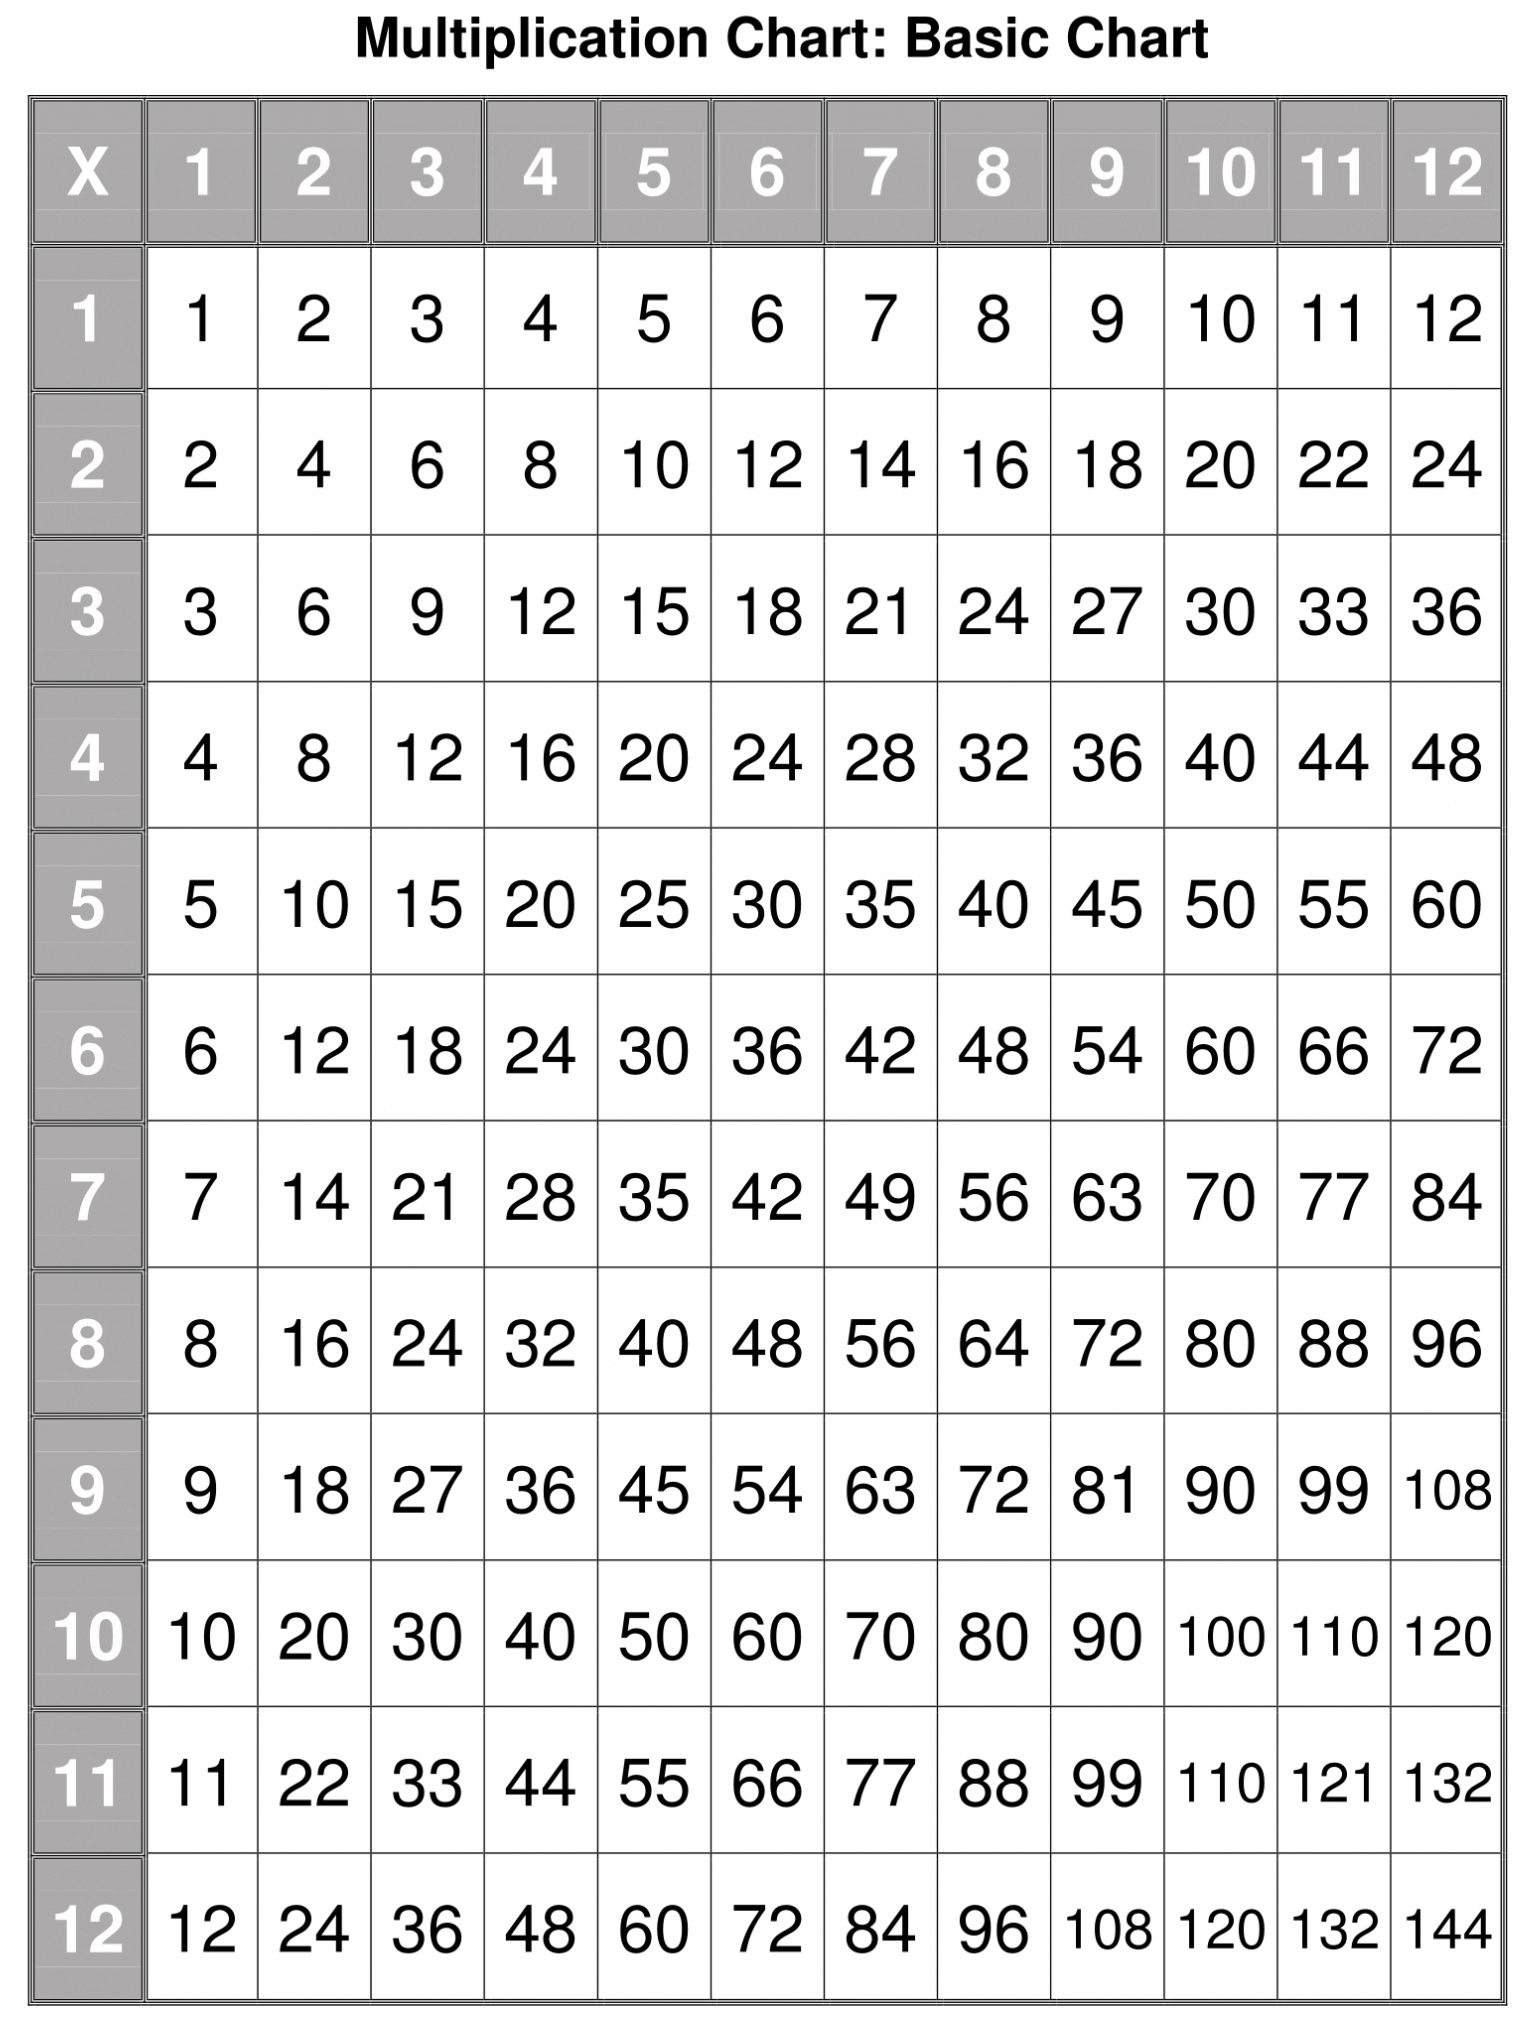 Printable Multiplication Table Pdf | Multiplication Charts within Printable Multiplication Chart Up To 50